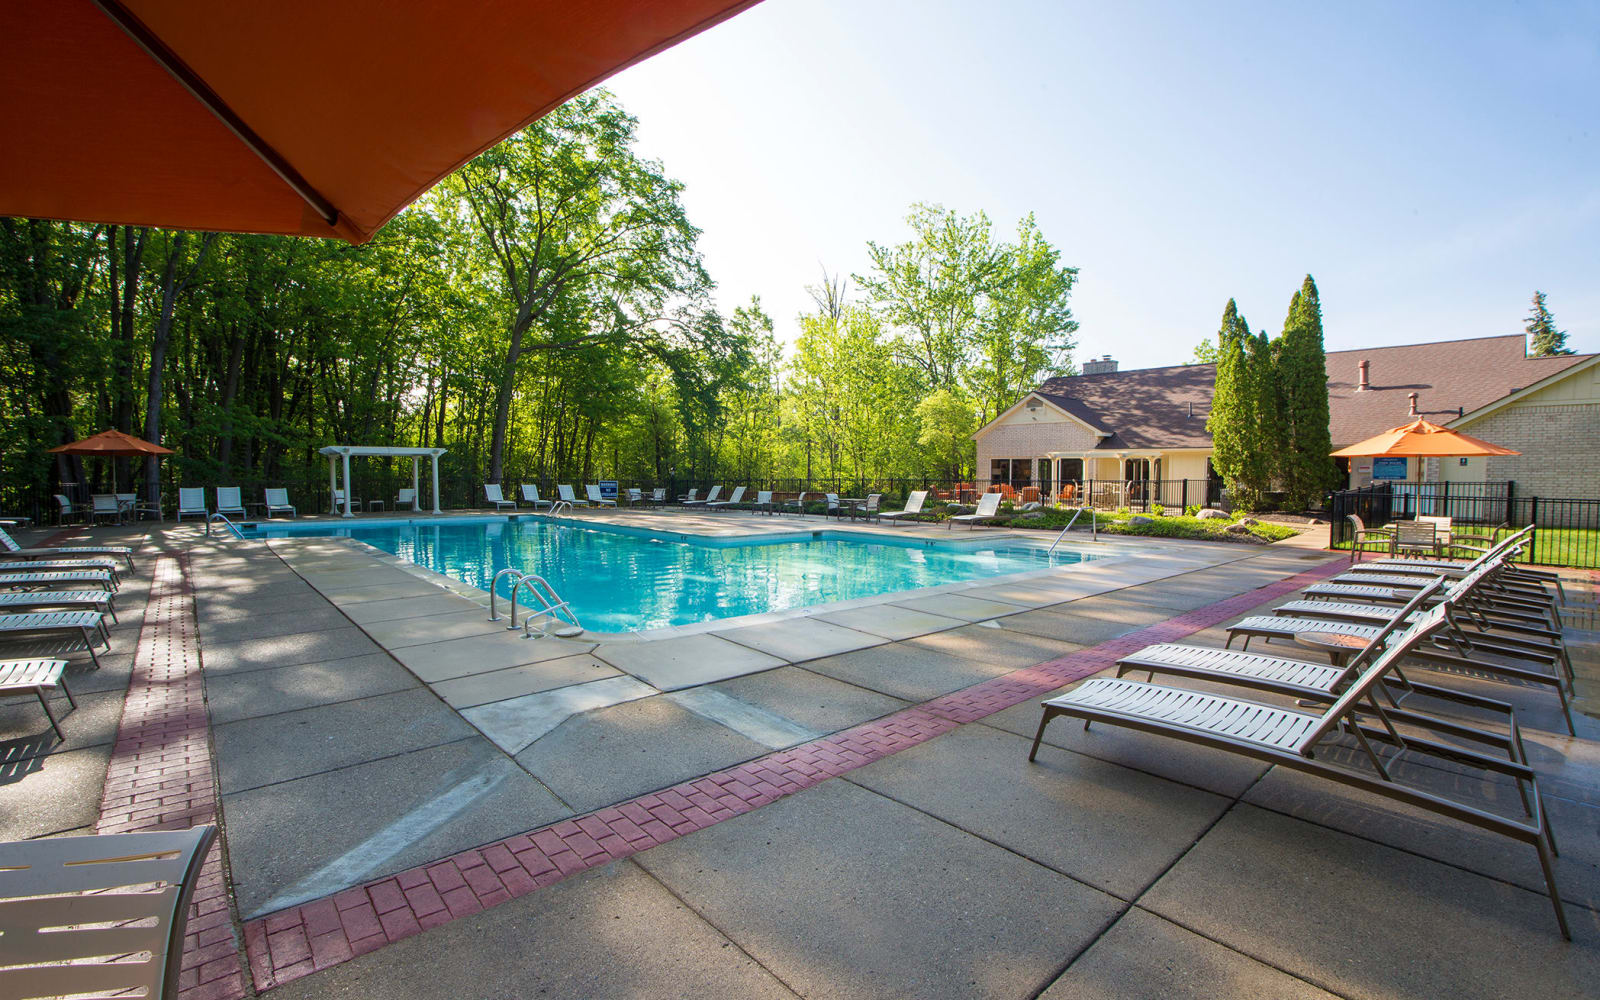 Swimming pool at Aldingbrooke in West Bloomfield, Michigan